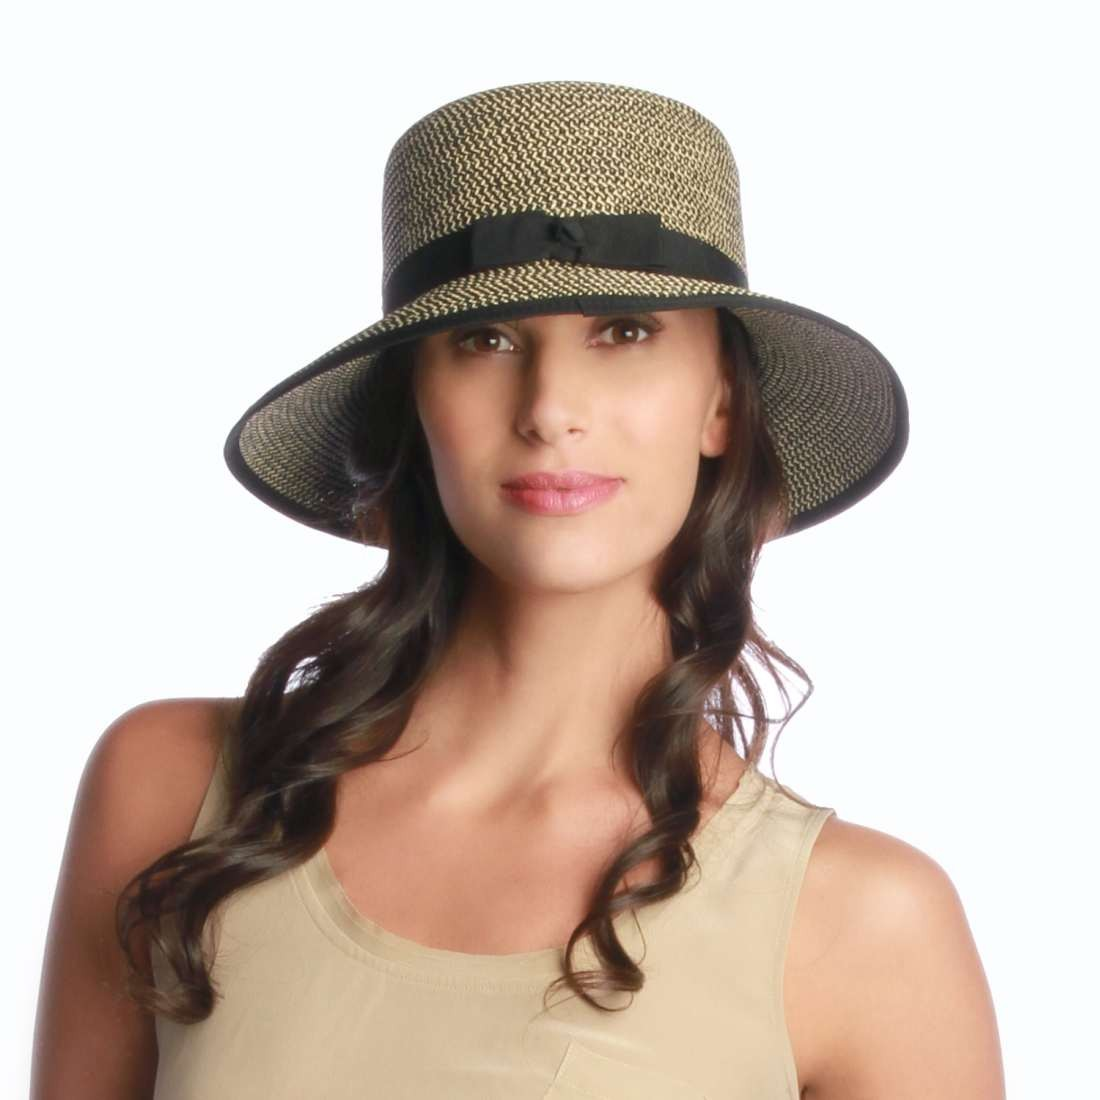 Physician Endorsed Pitch Perfect Women's Sun Hat